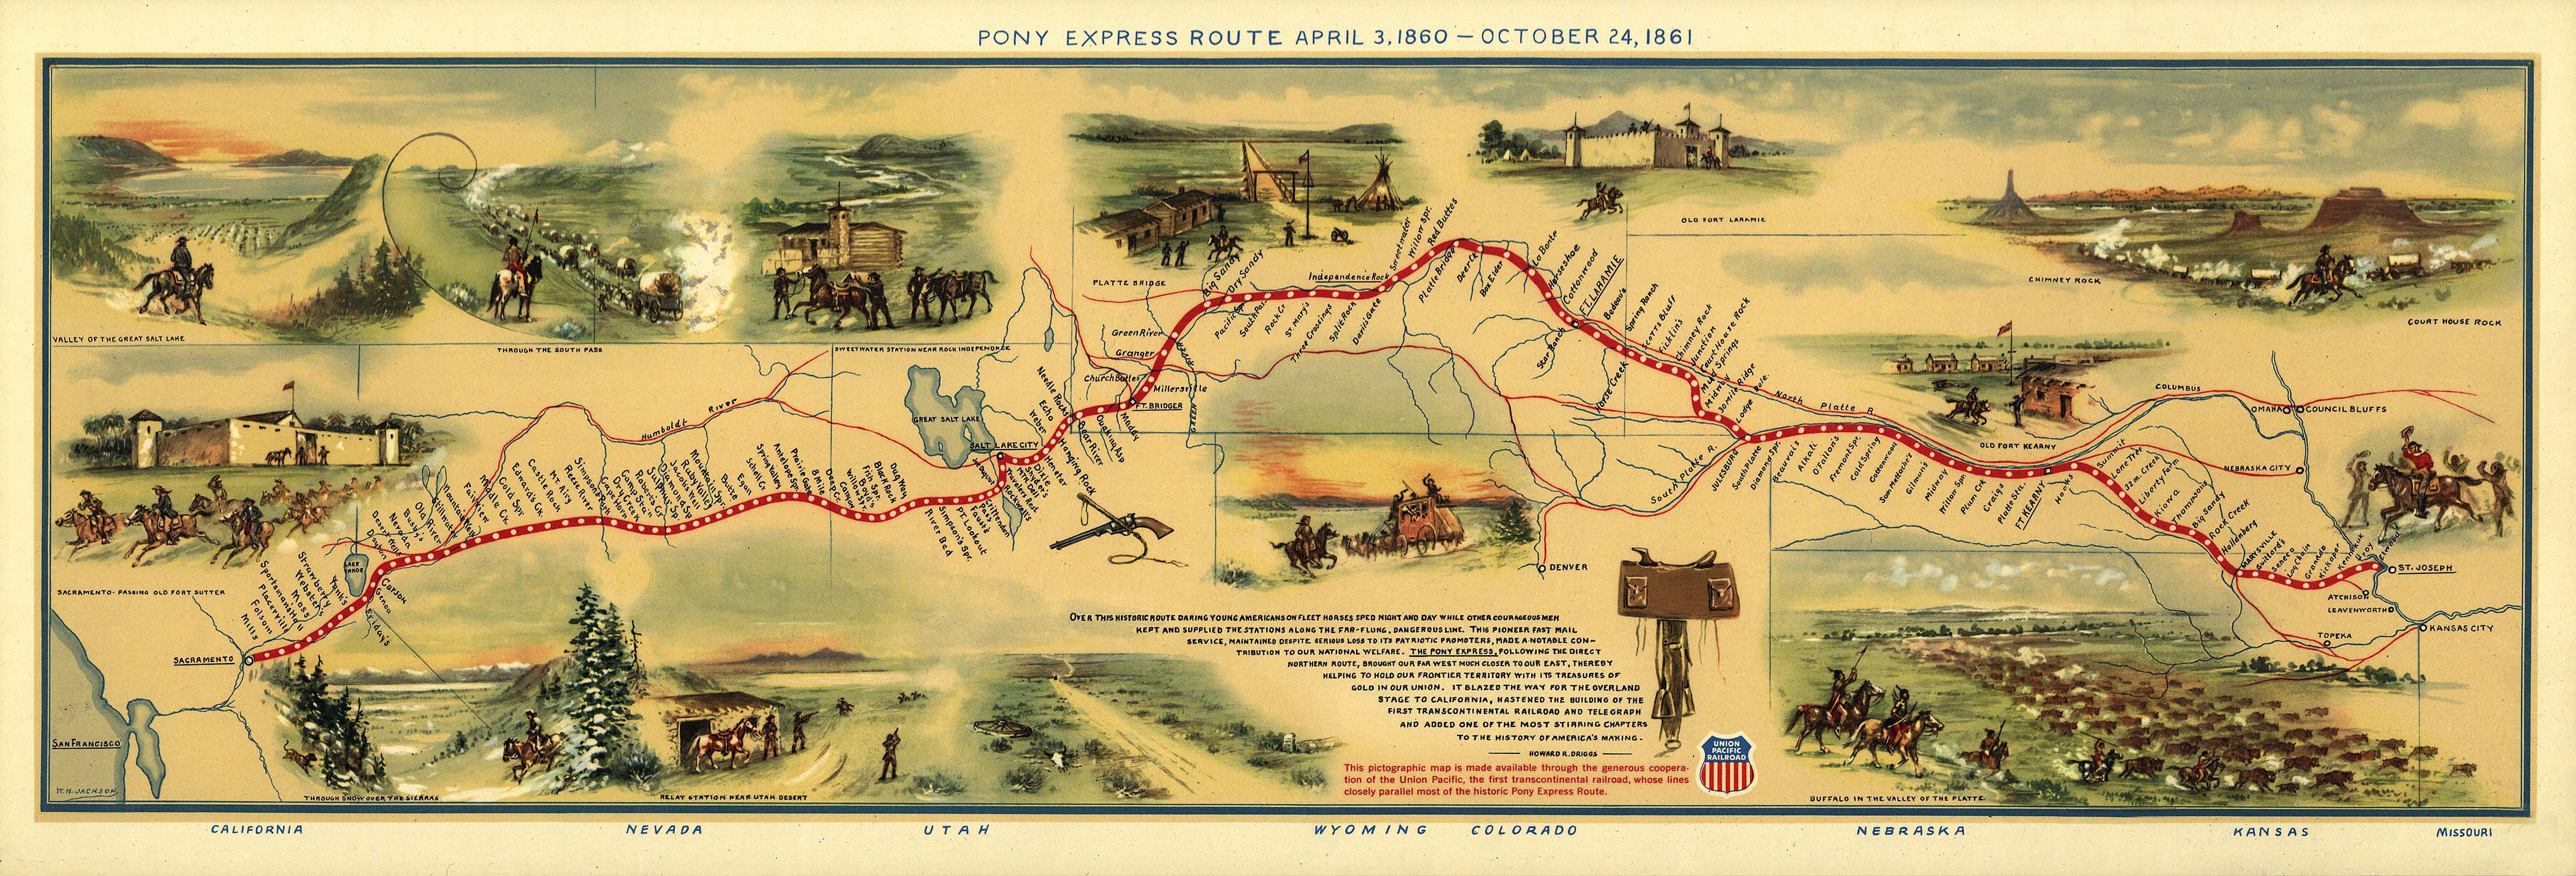 Gigantic 1860s Pony Express Map Dinosaur Cowboys